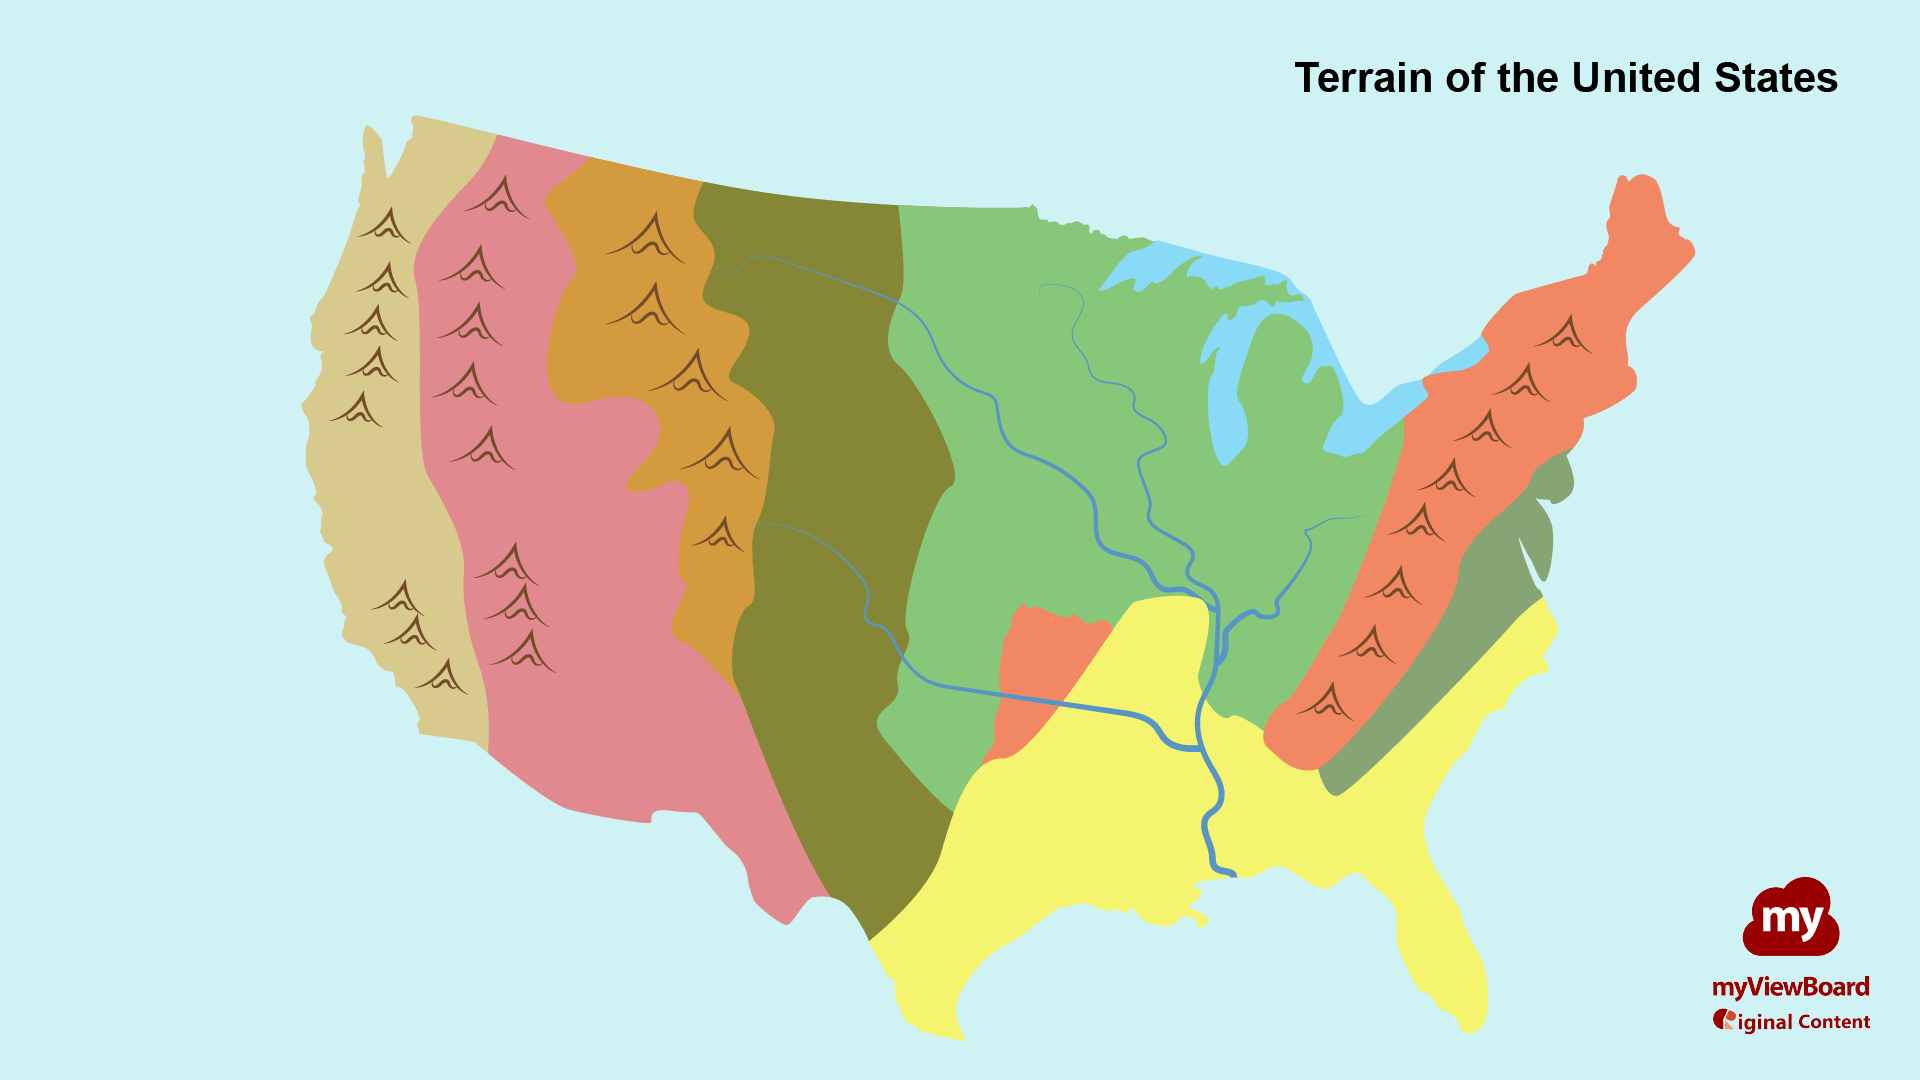 OCBnew thumbnail Terrain of the United States title logo Full HD.png